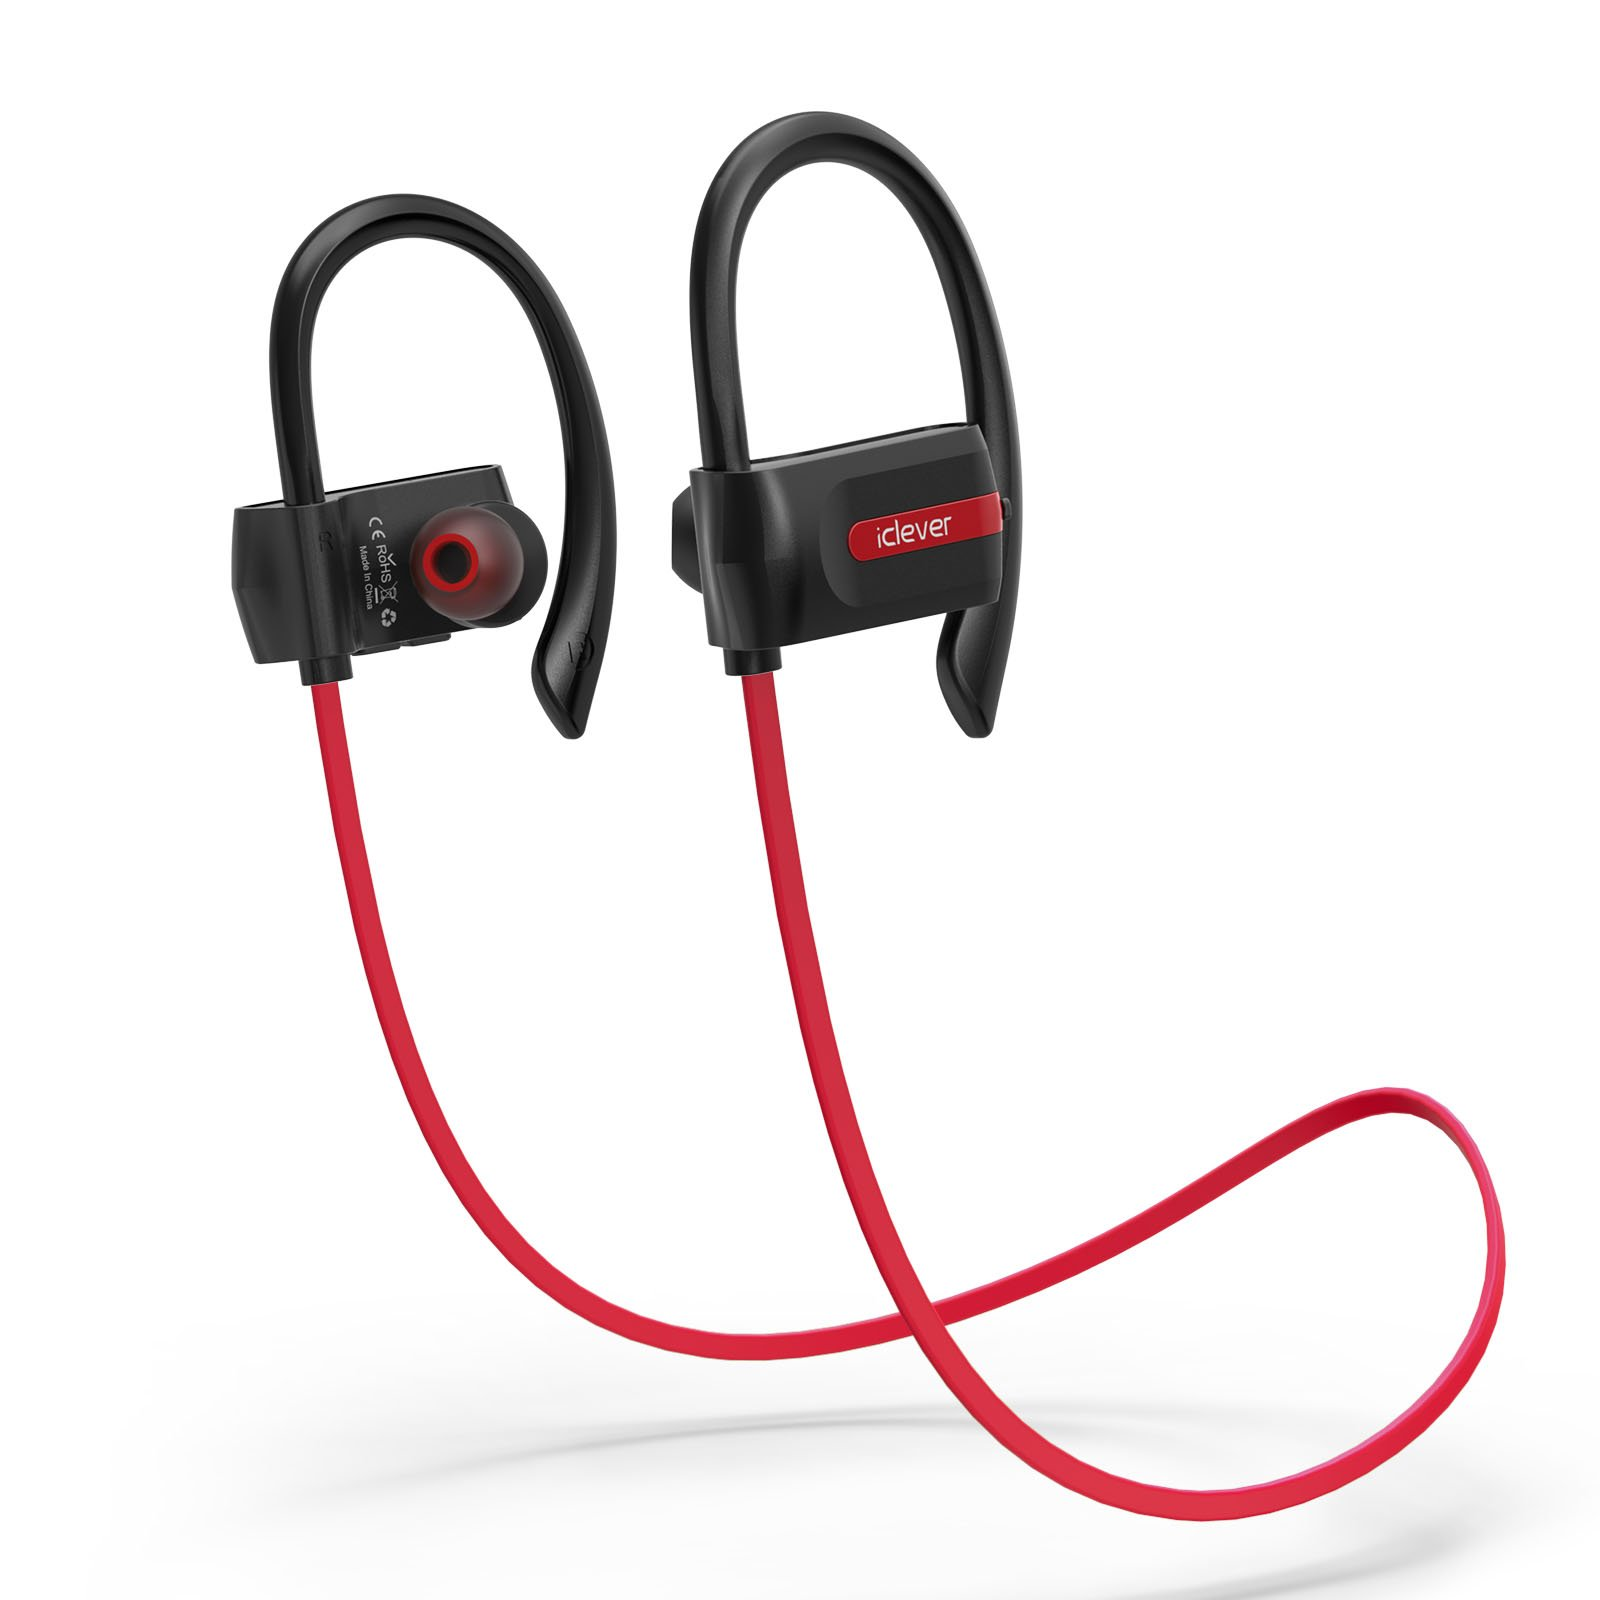 iClever Bluetooth Headphones, Sport Wireless Earphones Built-in Mic, Noise Cancelling, Nano-Coating Waterproof, 7-Hour Playtime, Wireless Earbuds Gym Workout Running - Red